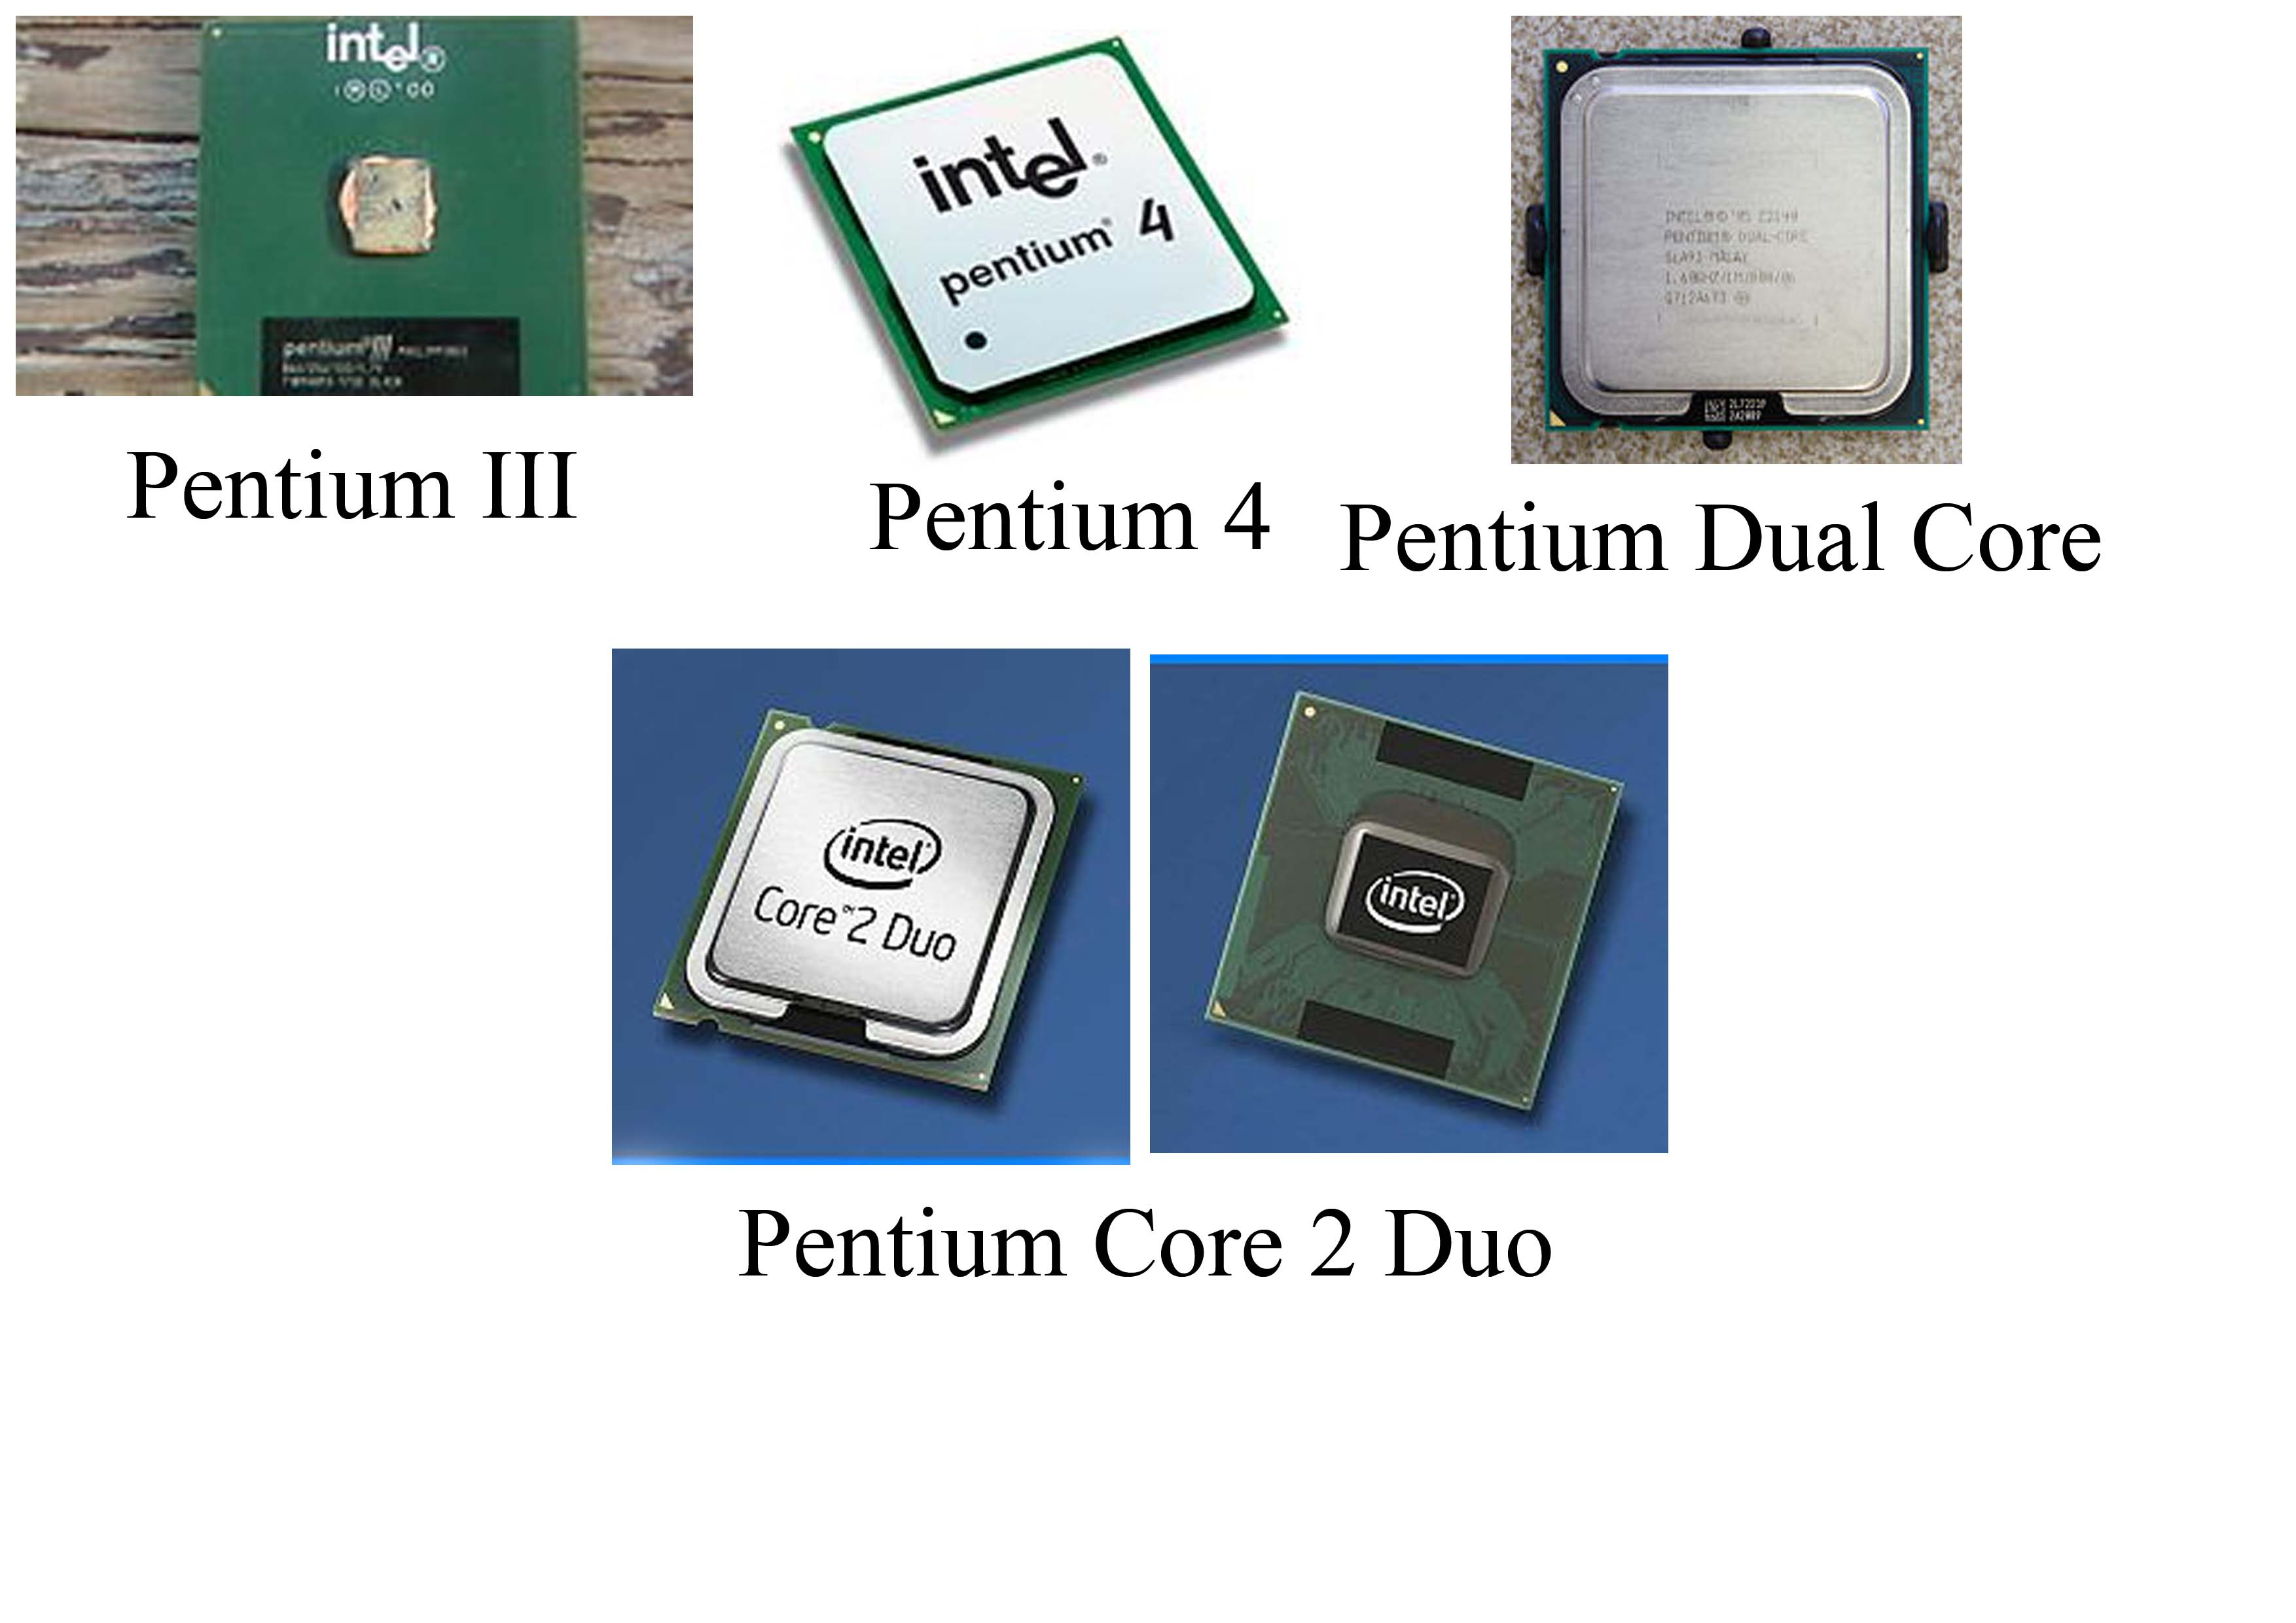 a study of the pentium pro processor The pentium ii microprocessor was largely based upon the microarchitecture of its predecessor, the pentium pro, but with some significant improvements unlike previous pentium and pentium pro processors, the pentium ii cpu was packaged in a slot-based module rather than a cpu socket.